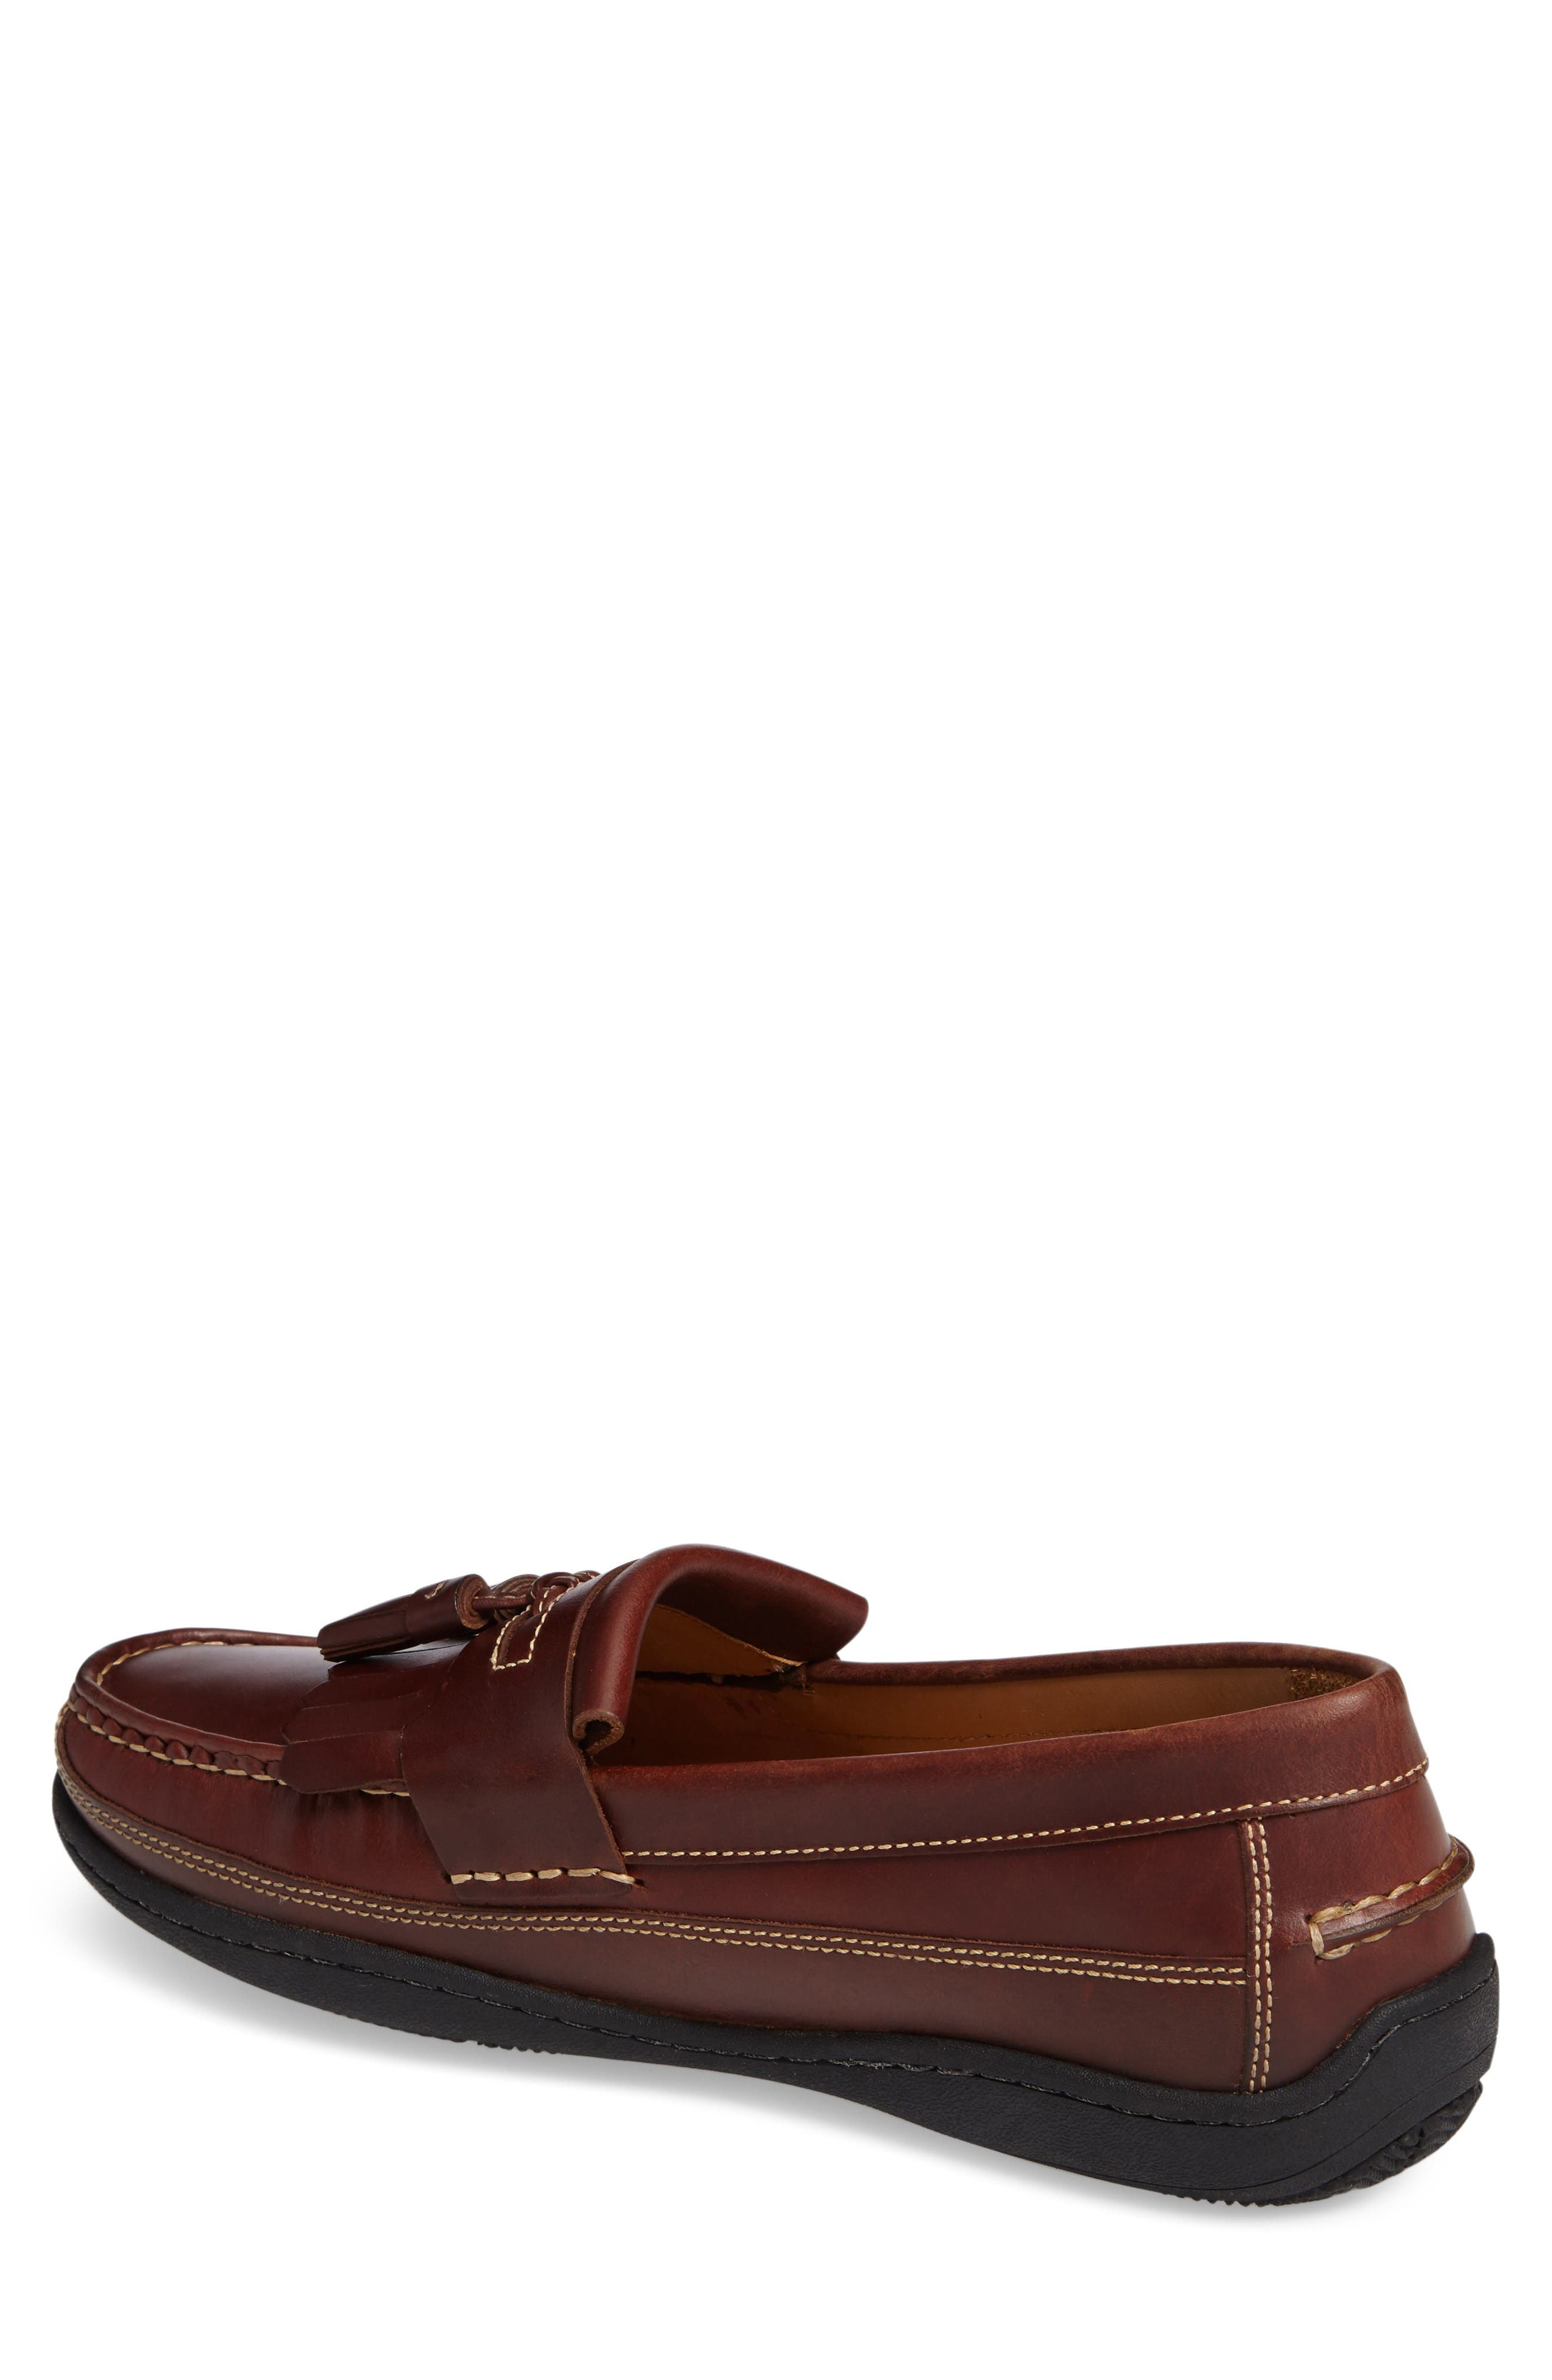 Fowler Kiltie Tassel Loafer,                             Alternate thumbnail 2, color,                             Mahogany Leather